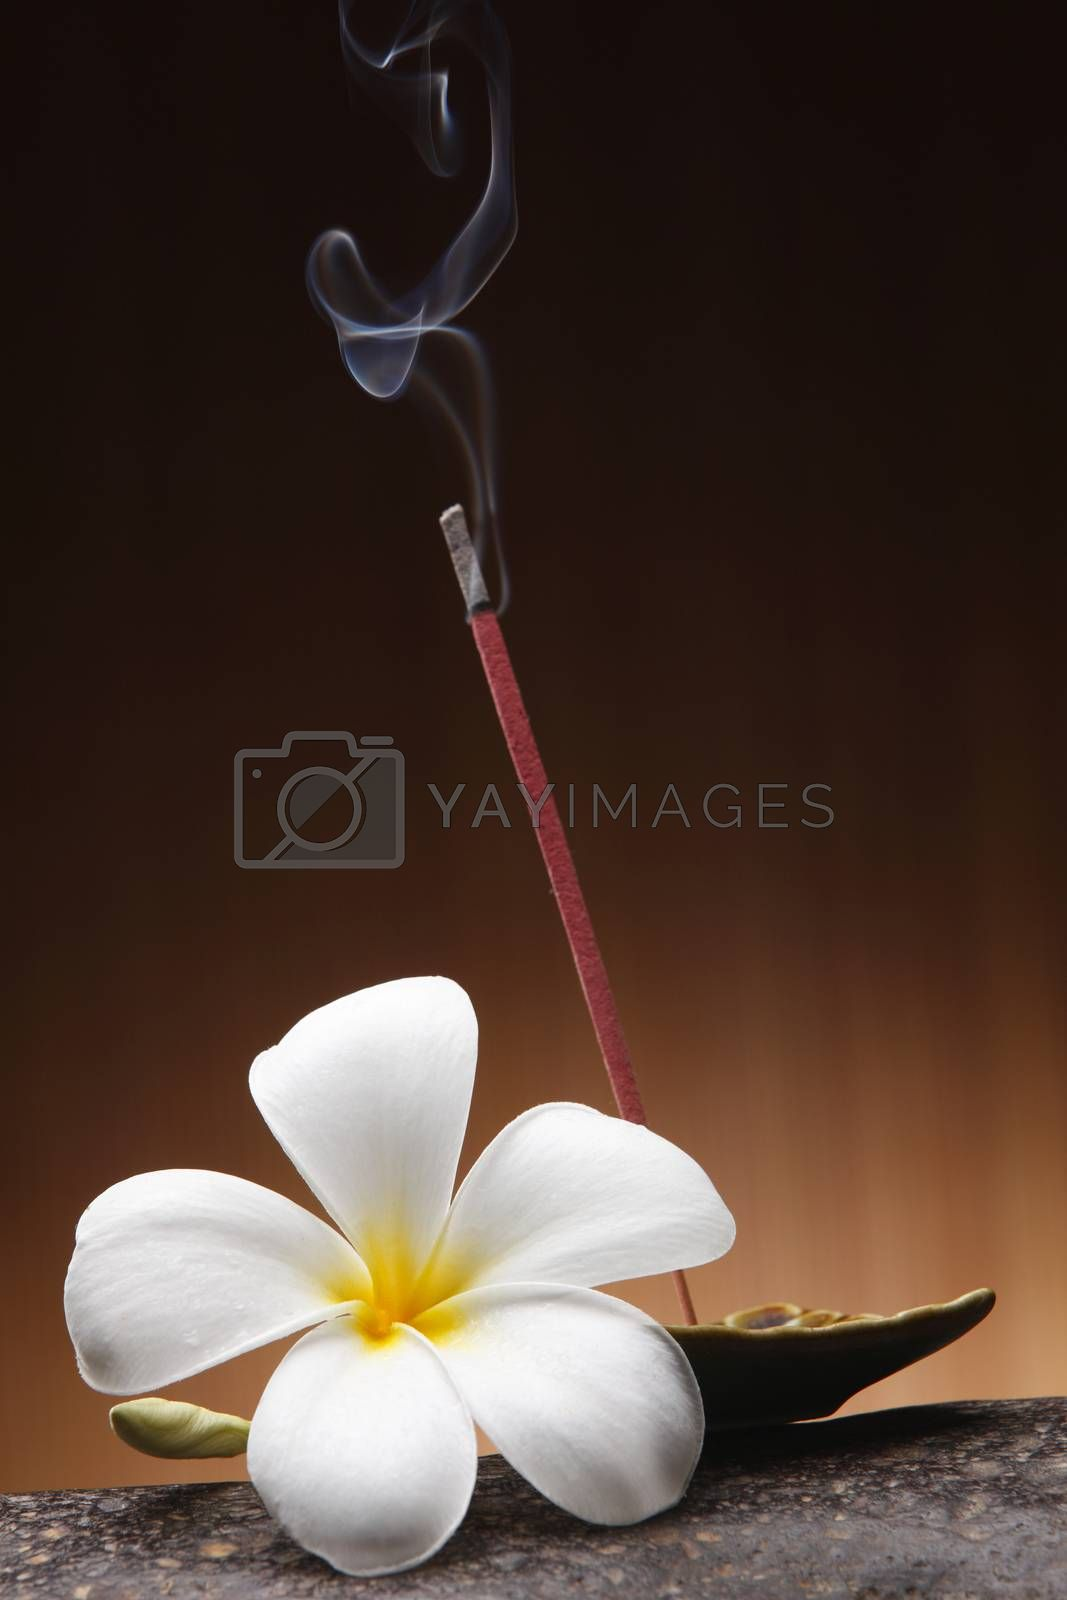 Burning incense stick and tray, studio shot